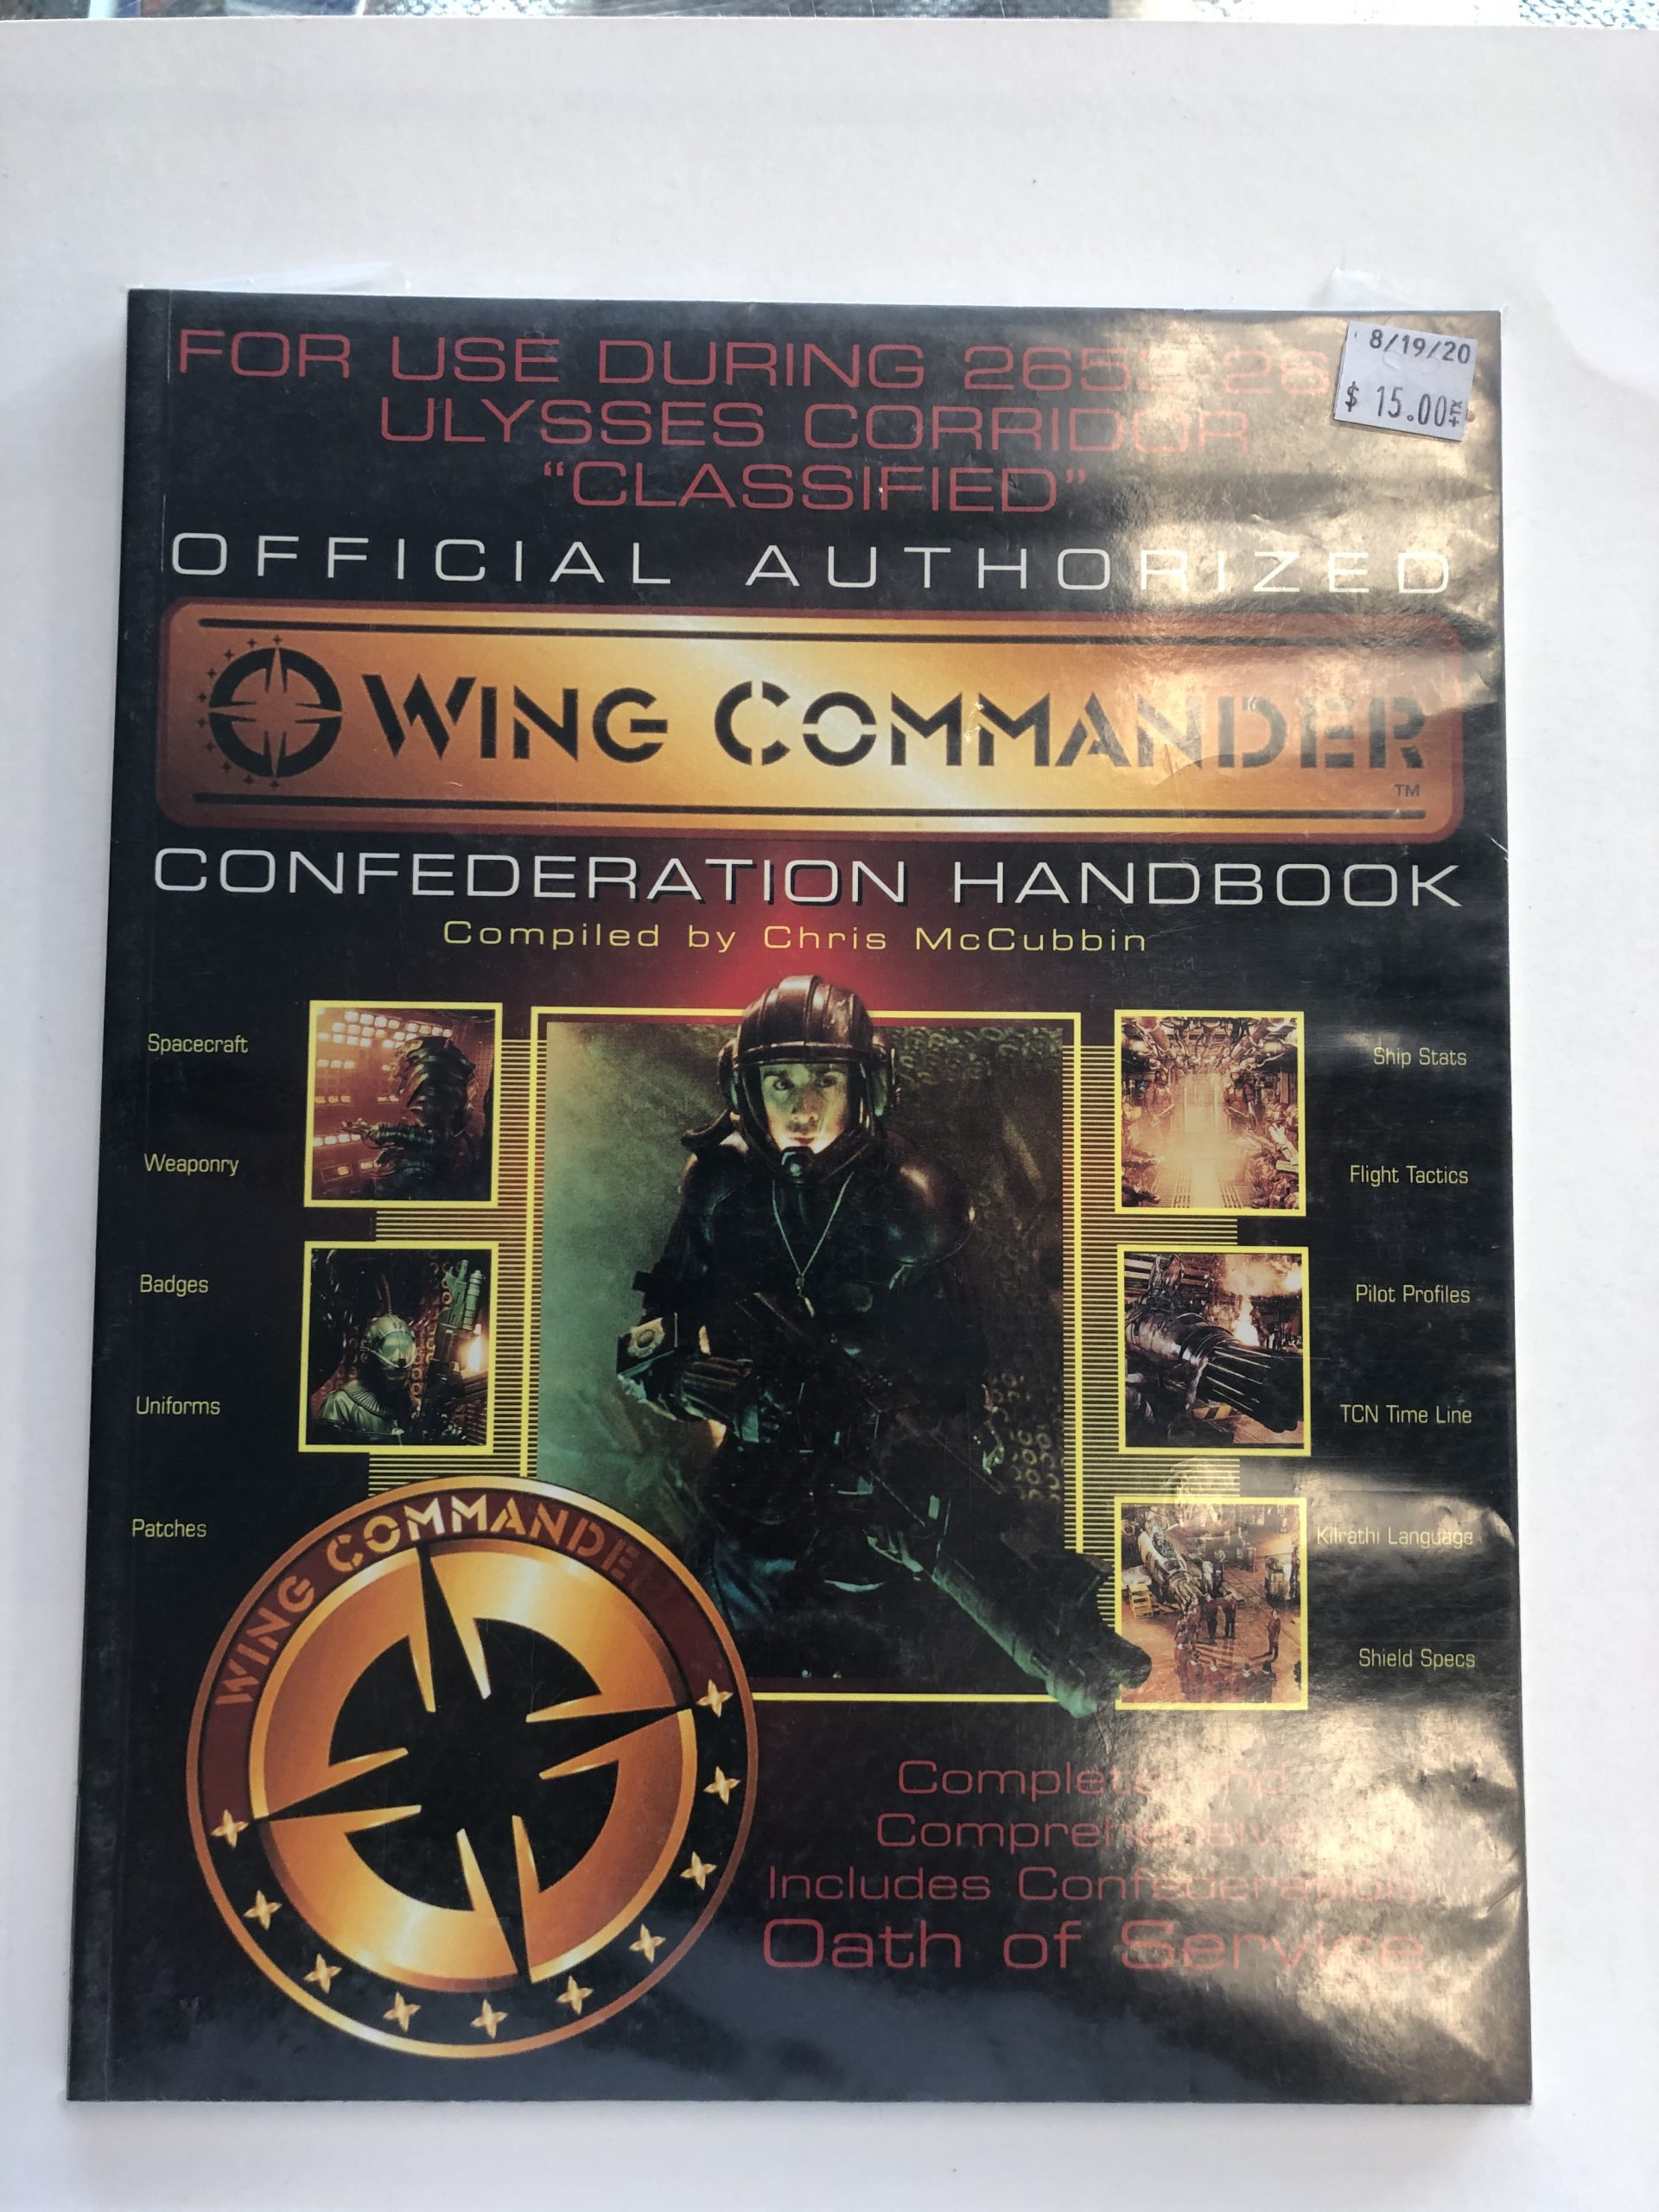 Owing Commander Guide Book